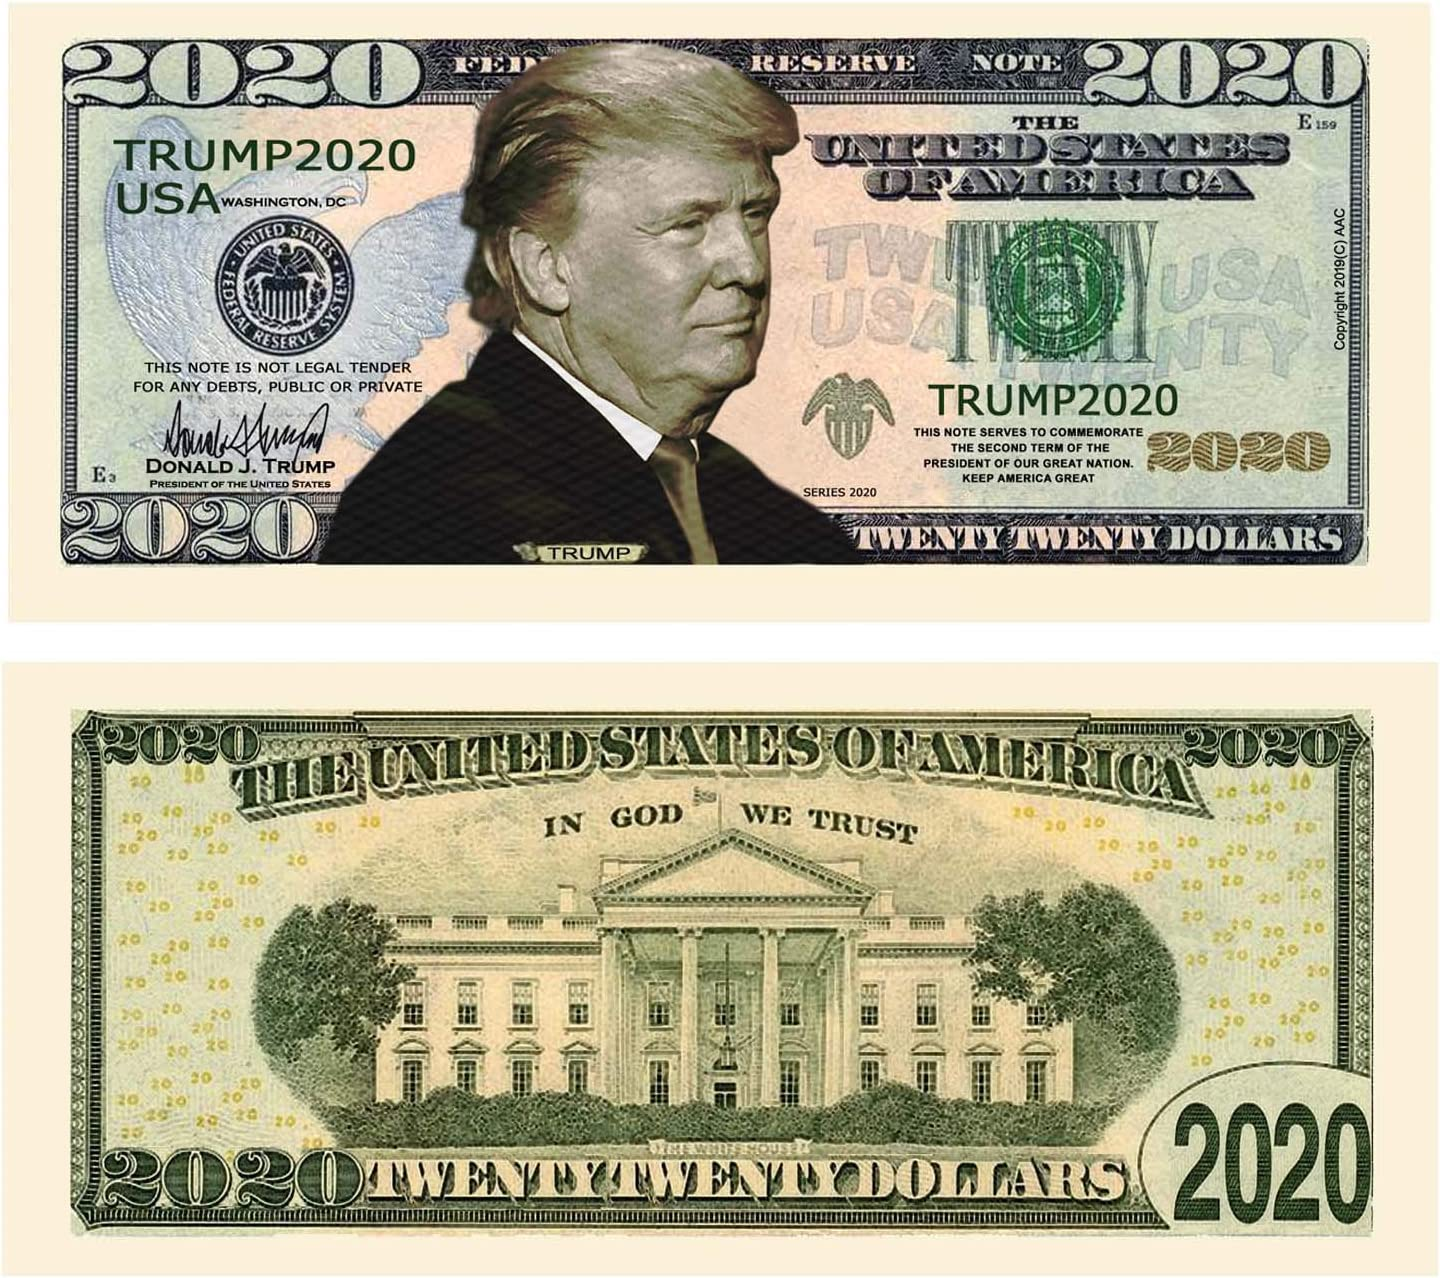 Donald Trump 2020 Re-Election - Pack of 50 - Presidential Dollar Bill - Limited Edition Novelty Dollar Bill. Full Color Front & Back Printing with Great Detail. Novelty Dollar Bill